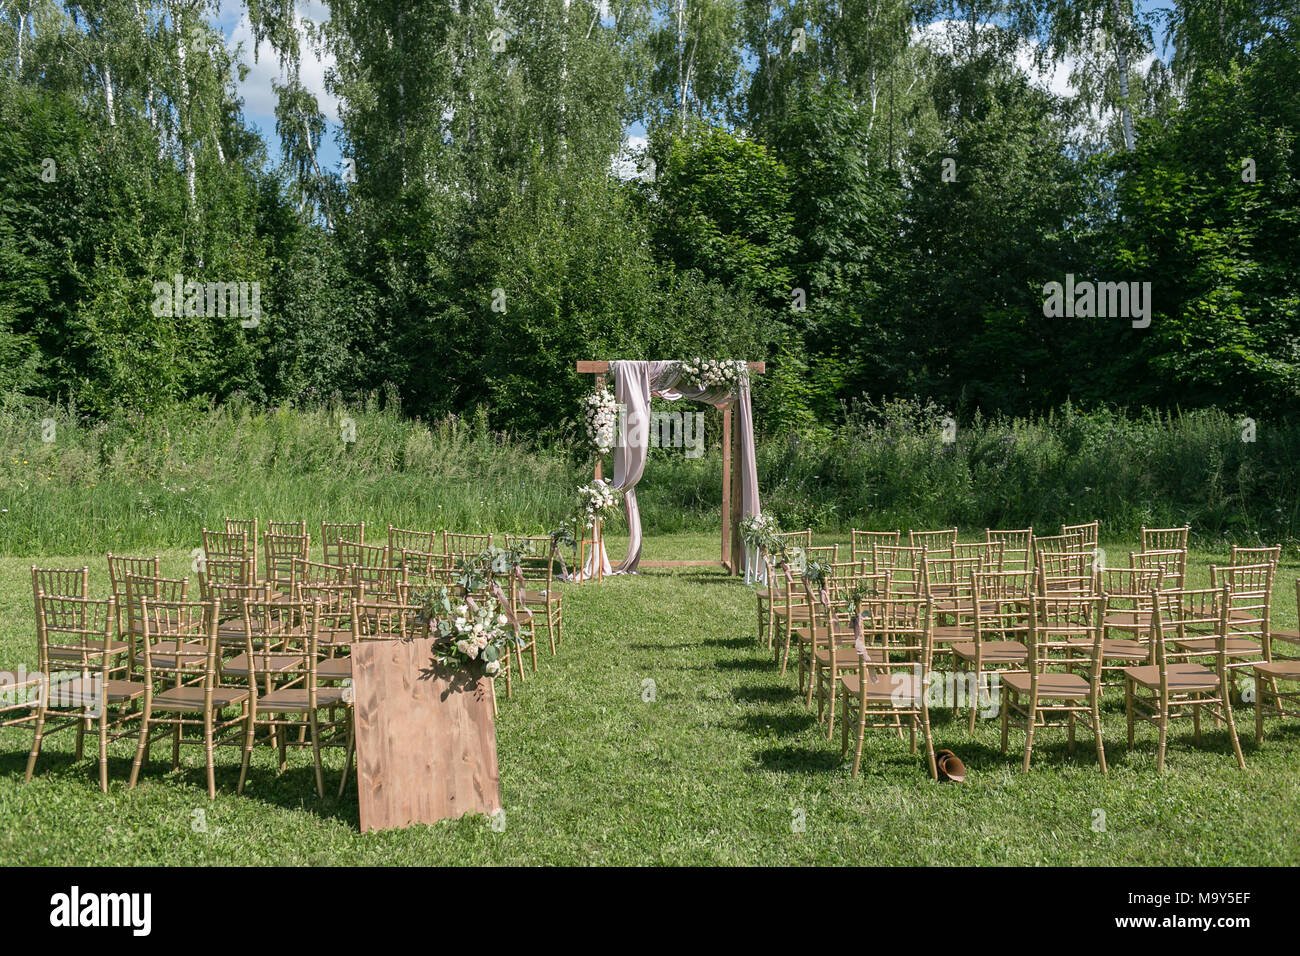 Beautiful setting for outdoors wedding ceremony waiting for bride and groom and guests. Wooden chairs decorated with flowers, are in the zone of the wedding ceremony in a forest - Stock Image